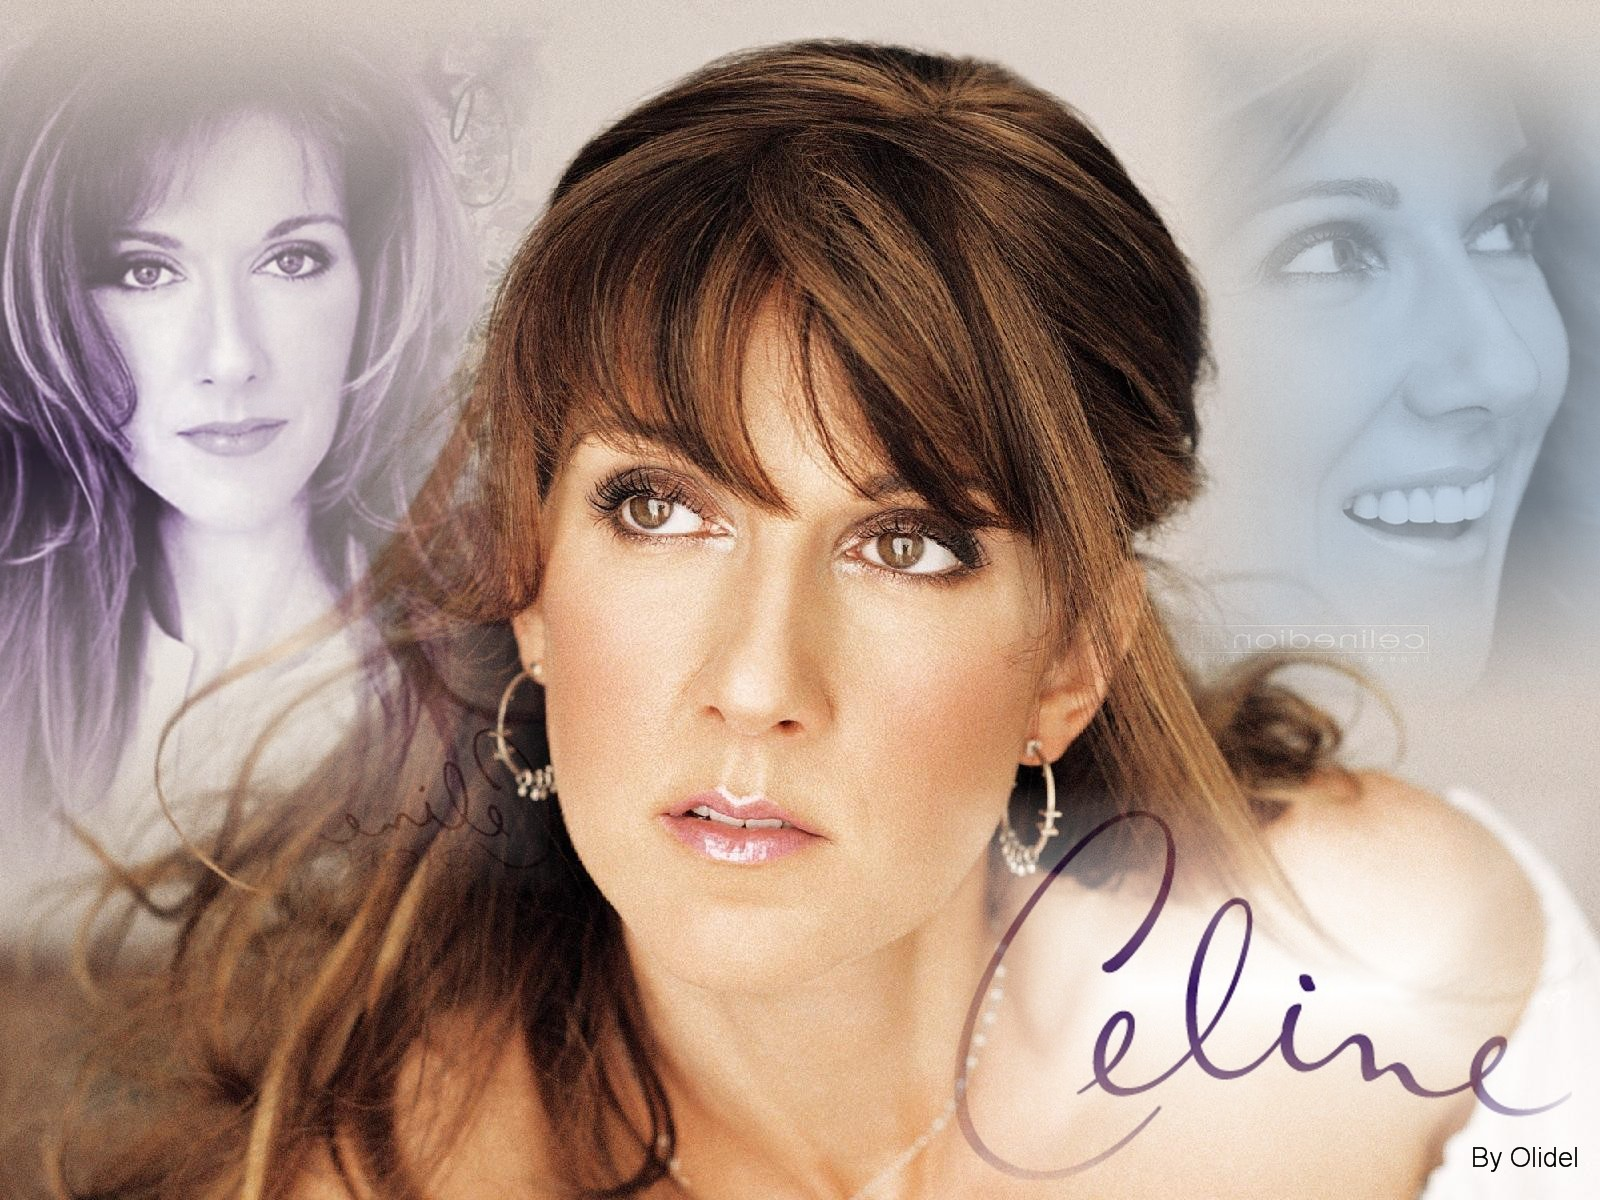 http://3.bp.blogspot.com/-1BYGPbT-j0E/T4KNMU-lgnI/AAAAAAAAAbY/MfVEk9Iaa-c/s1600/The-best-top-desktop-celine-dion-wallpapers-6.jpg